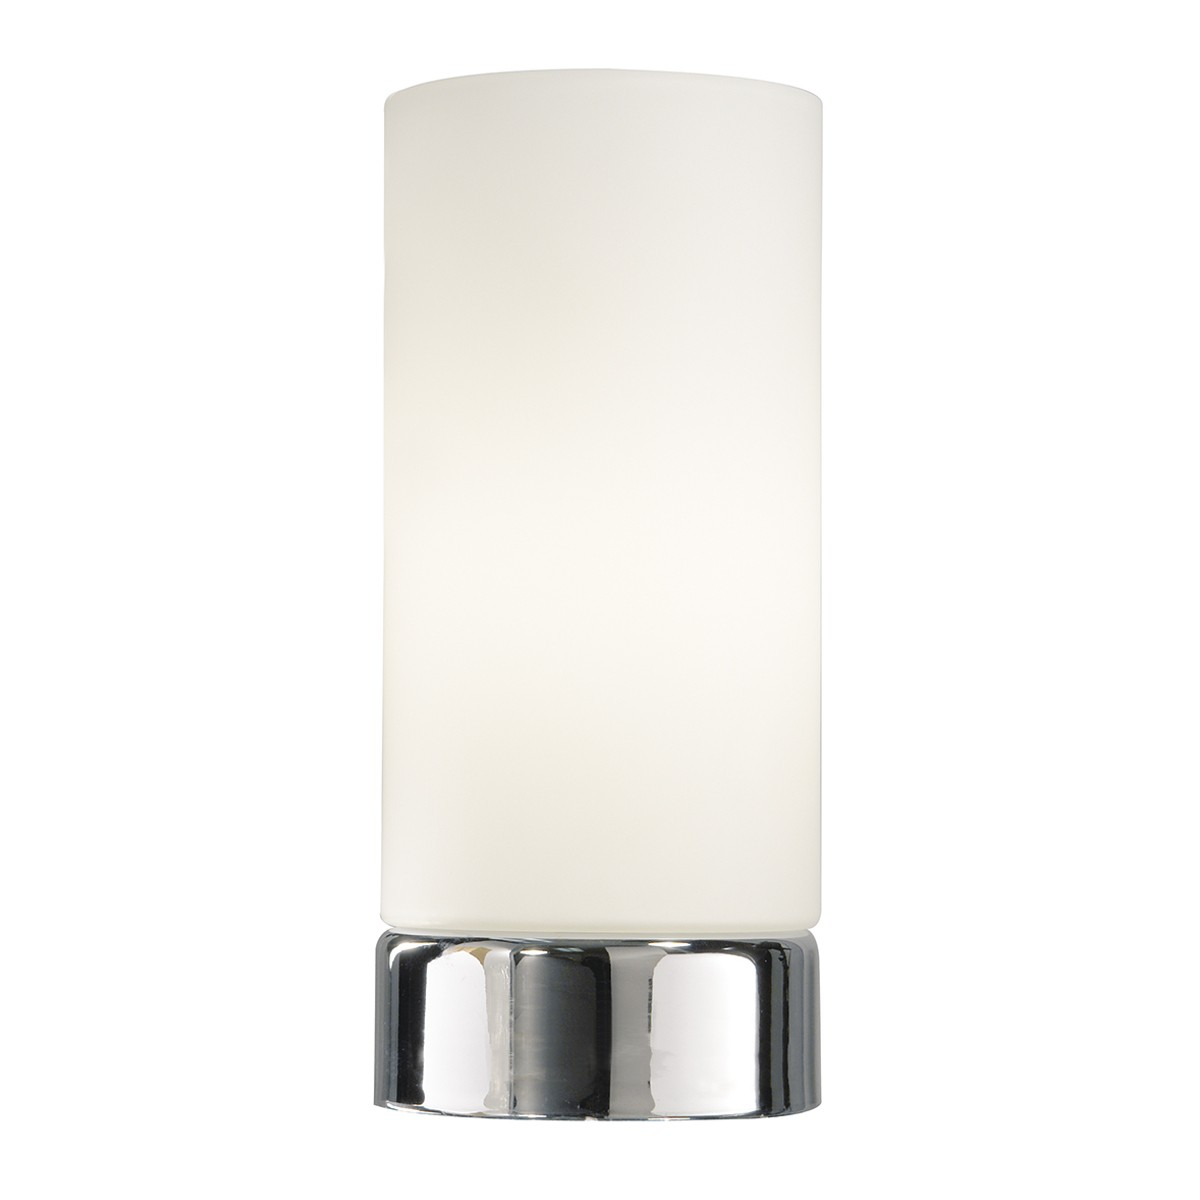 Owen Touch Round Glass Table Lamp Complete With Shade from Franks Complete House Furnishers